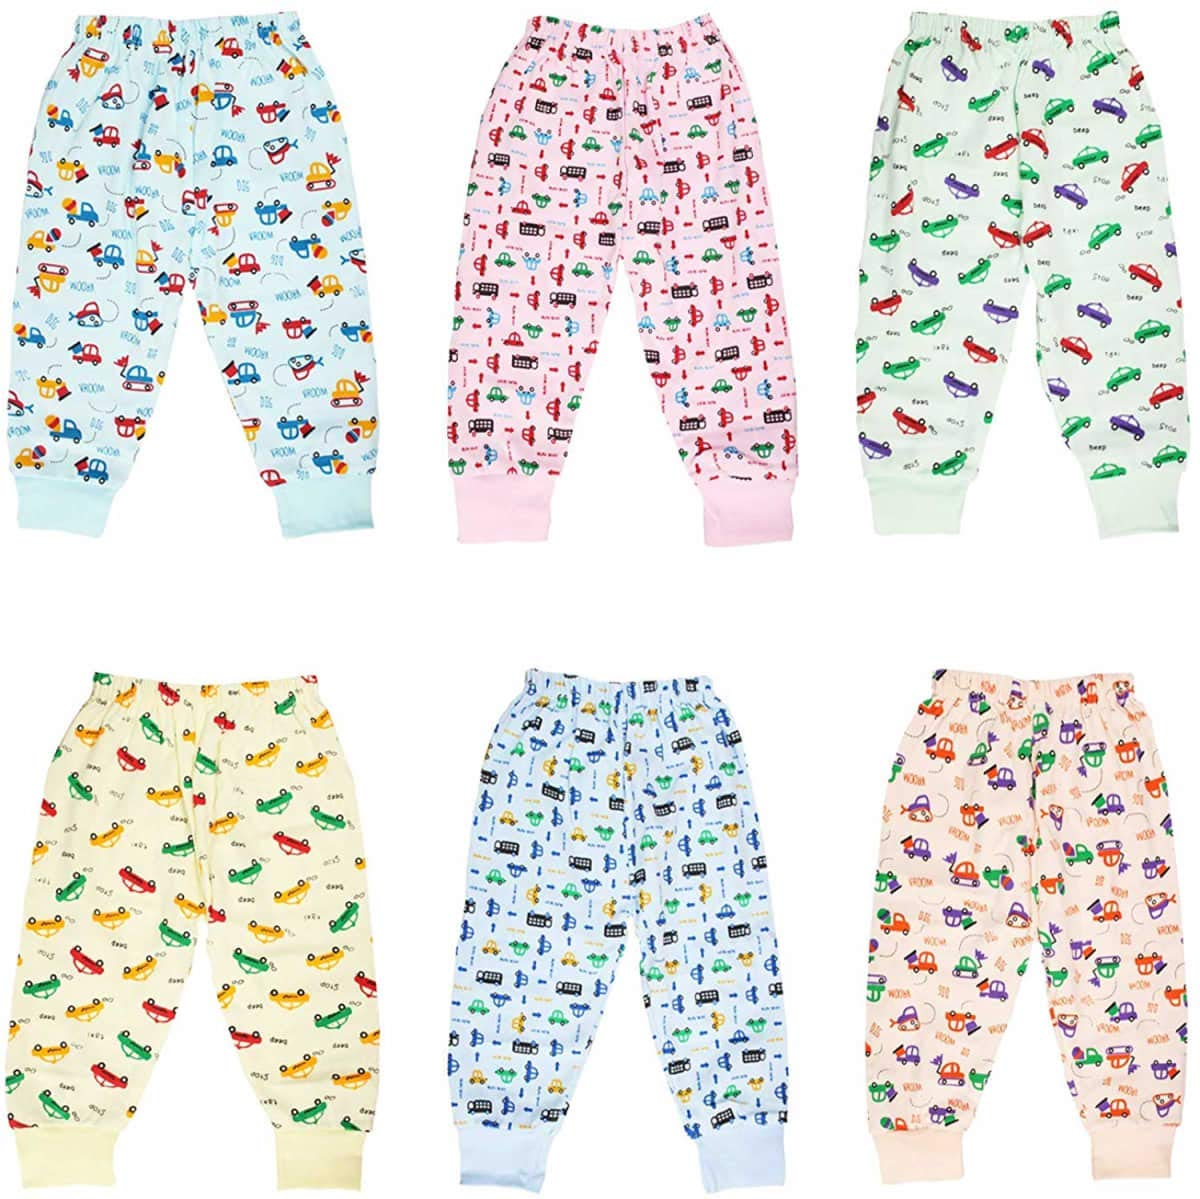 Happy Baby's Unisex Hoisery Cotton Full Pant With Rib | Pack Of 6 Sets | For Your 9-12 Months New Born Cuties (Children: L) (9-12 months)